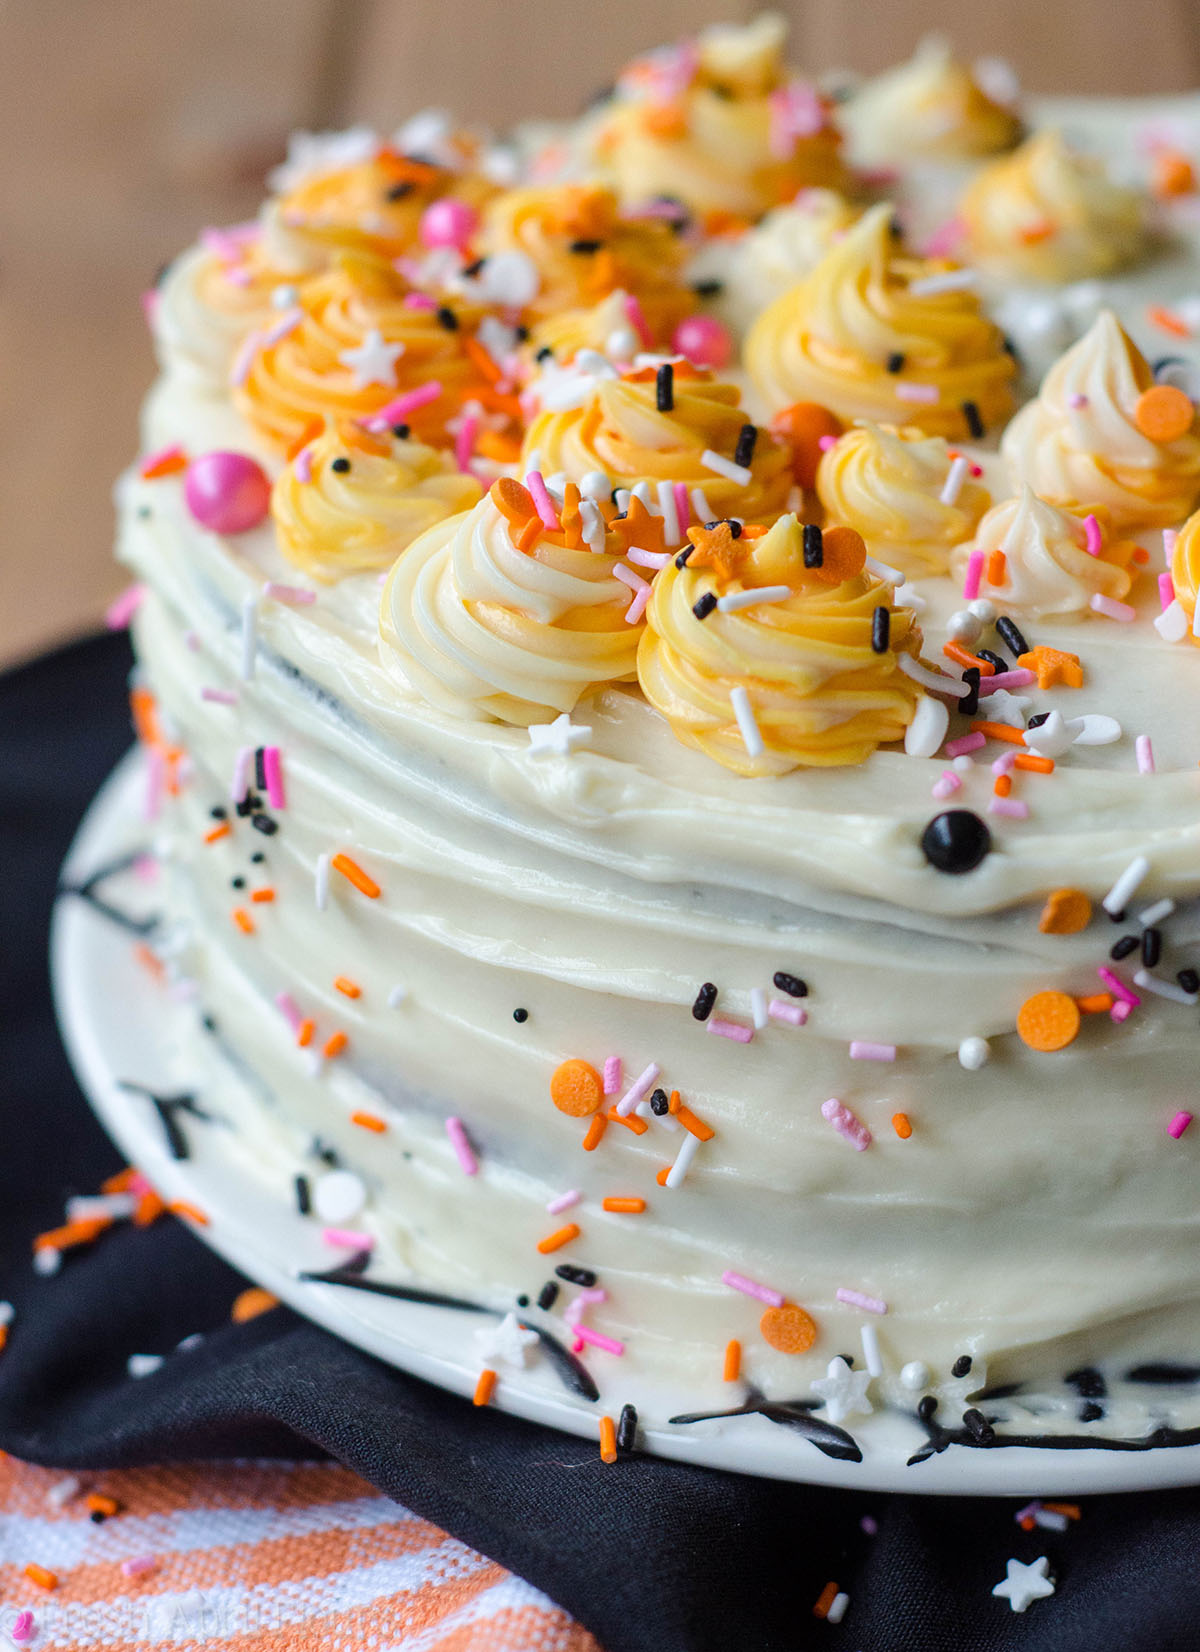 black velvet layer cake decorated with pink and orange sprinkles